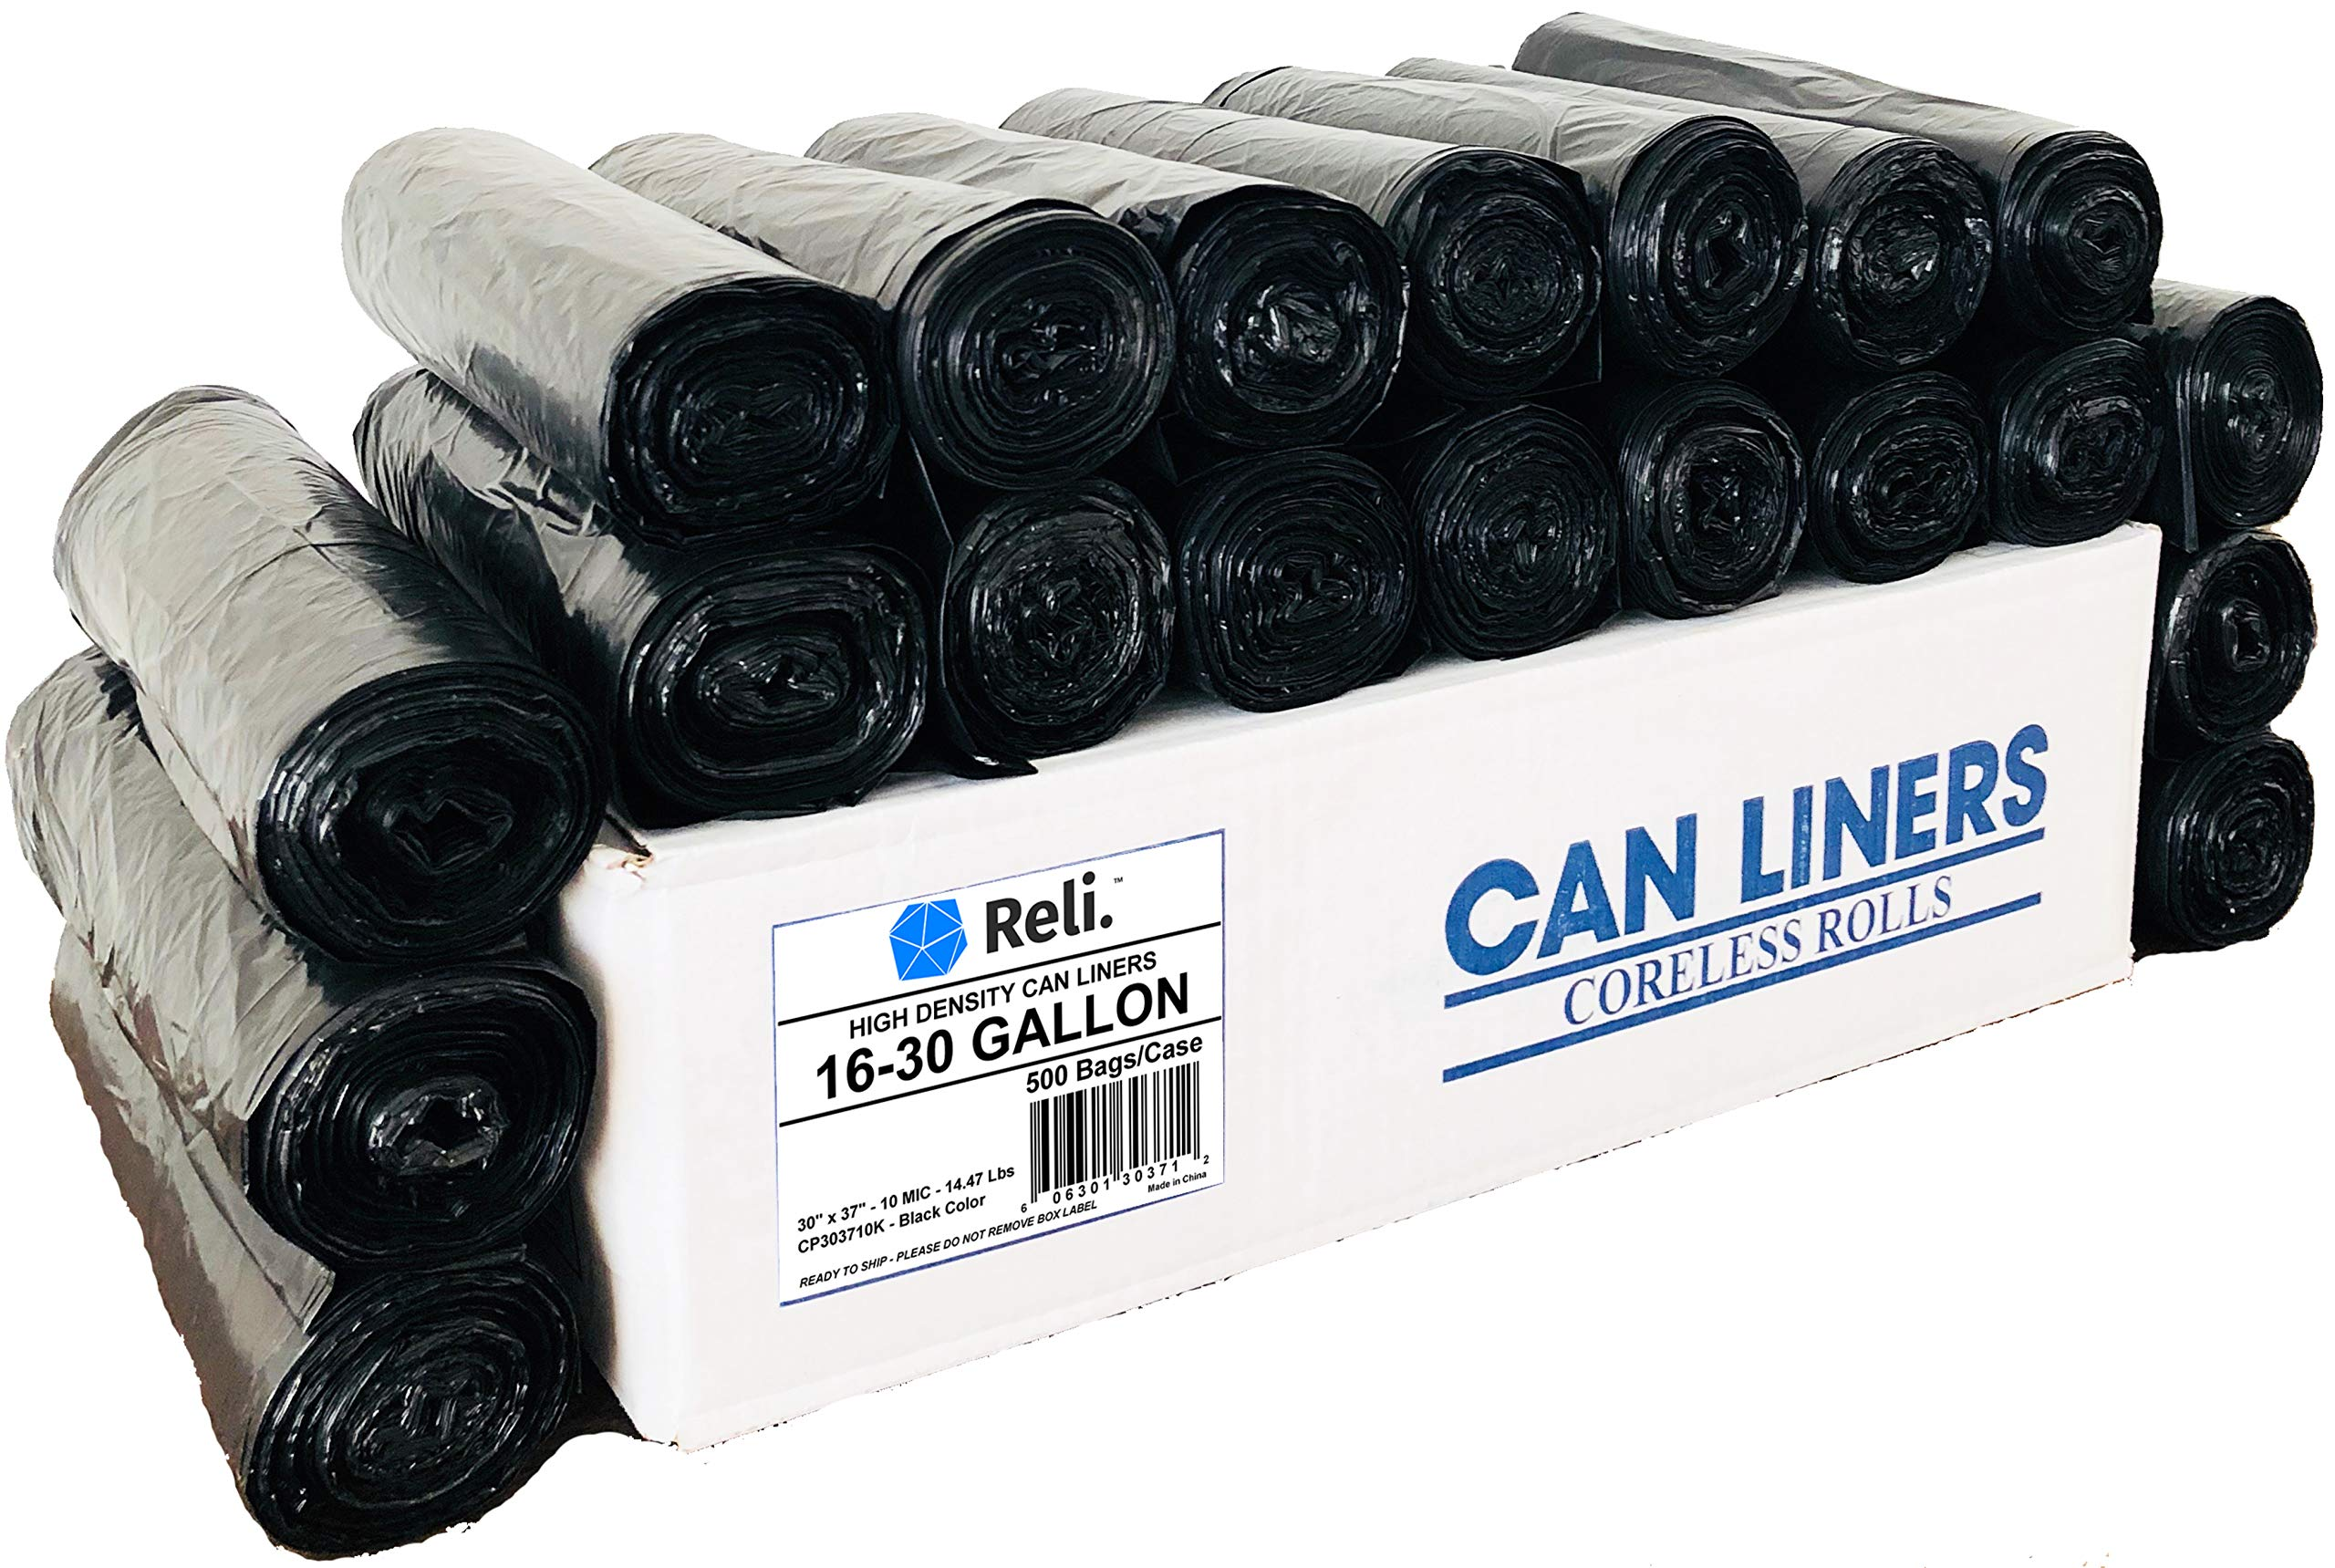 Reli. Trash Bags, 16-30 Gallon (500 Count Wholesale) - High Density Rolls (Black) - Can Liners, Garbage Bags with 16 Gallon (16 Gal) to 30 Gallon (30 Gal) Capacity